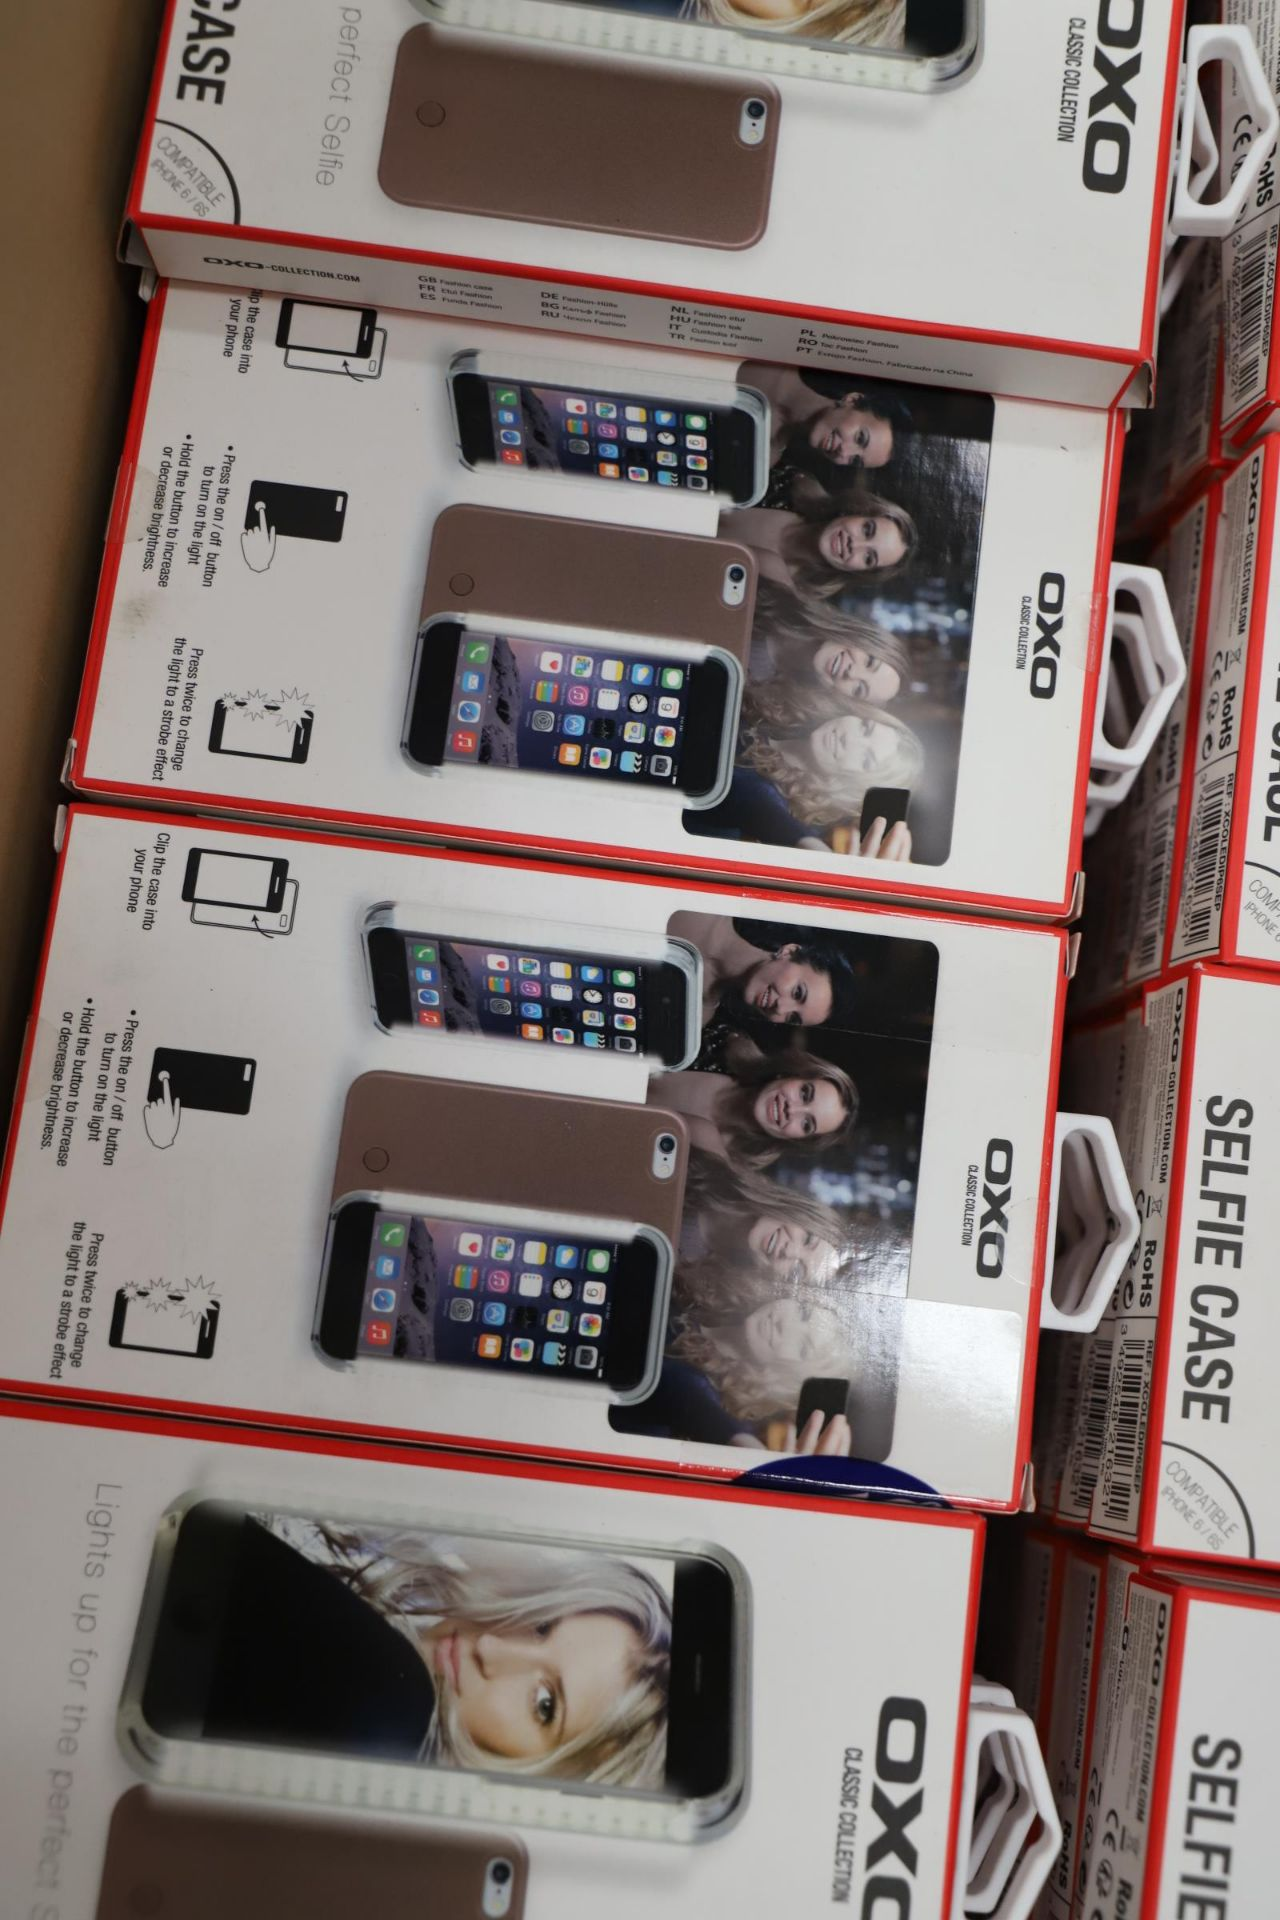 Lot 16 - *No Reserve* 121 LEDlightup selfie case for Iphone Rose gold, RRP £1815.00